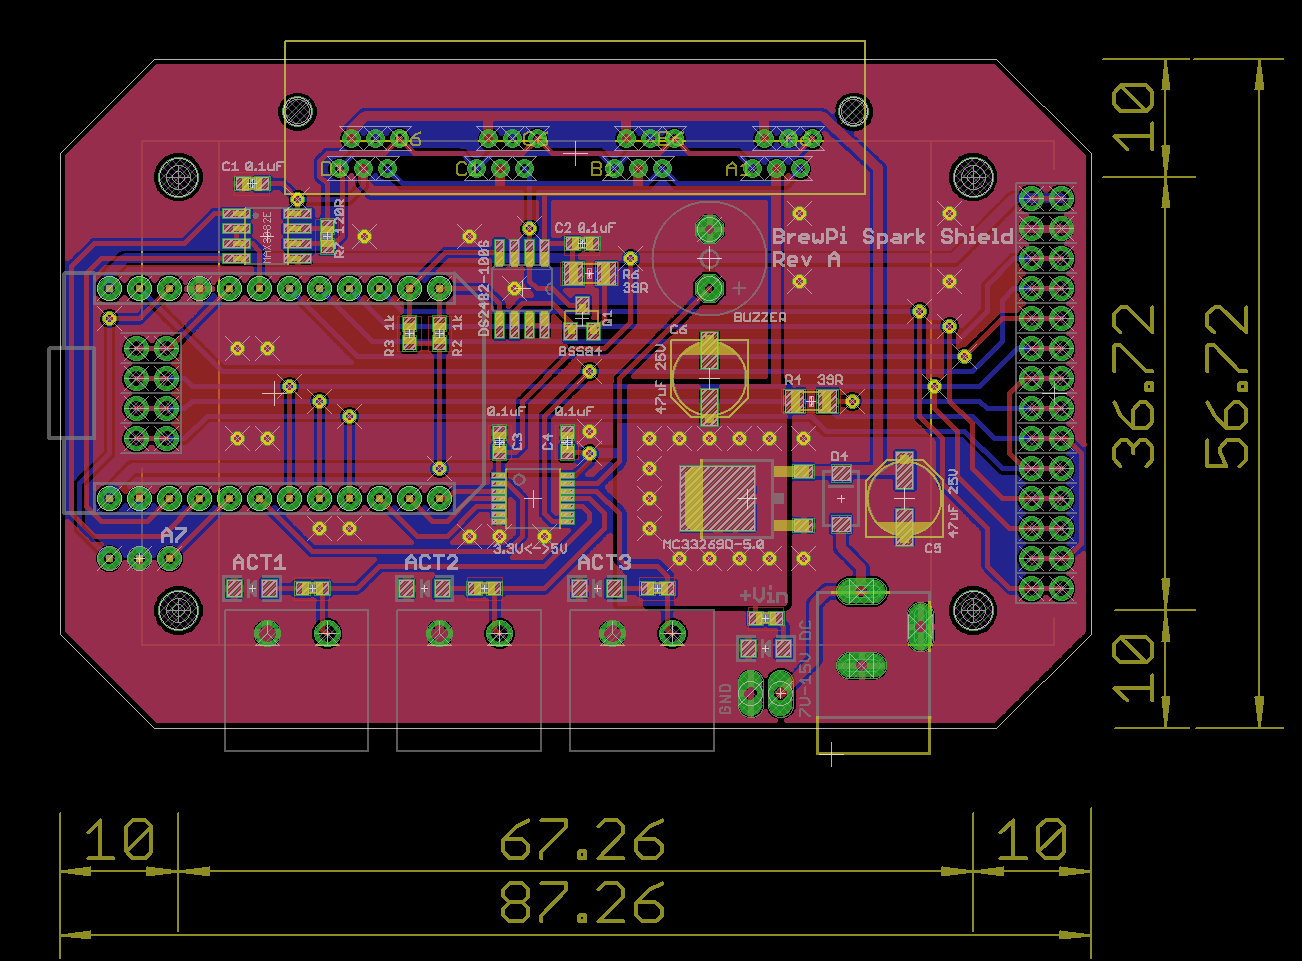 brewpi spark shield brd revA looking for feedback on brewing shield with touchscreen project 120V LED Wiring Diagram at edmiracle.co